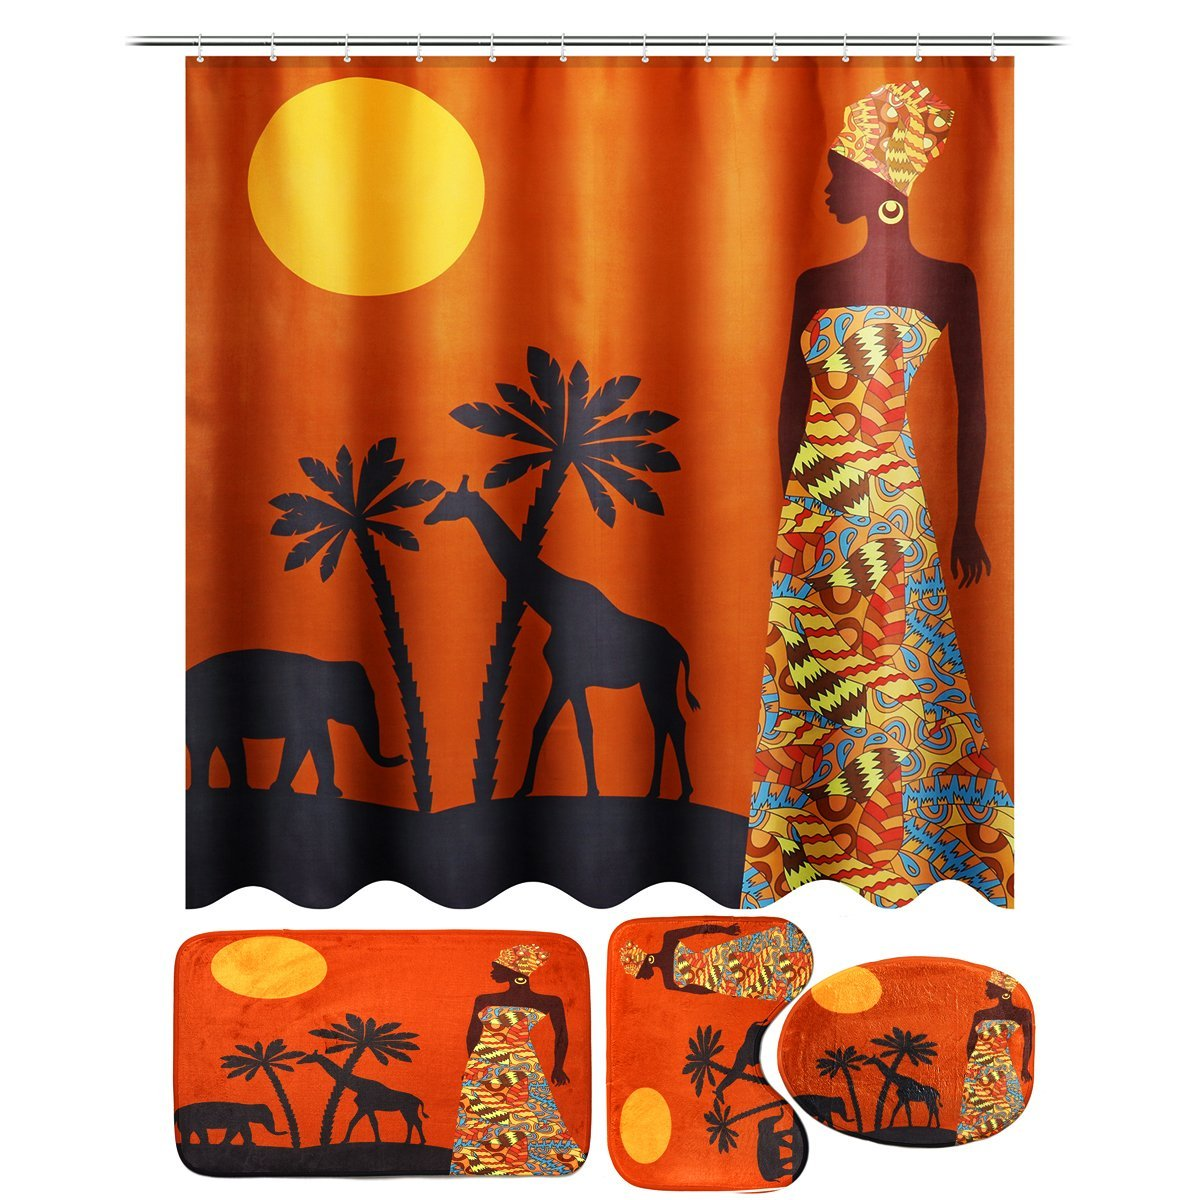 FunnyBathroom™ Africa Waterproof Bathroom Shower Curtain Toilet Cover Mat Non-slip Rug Set